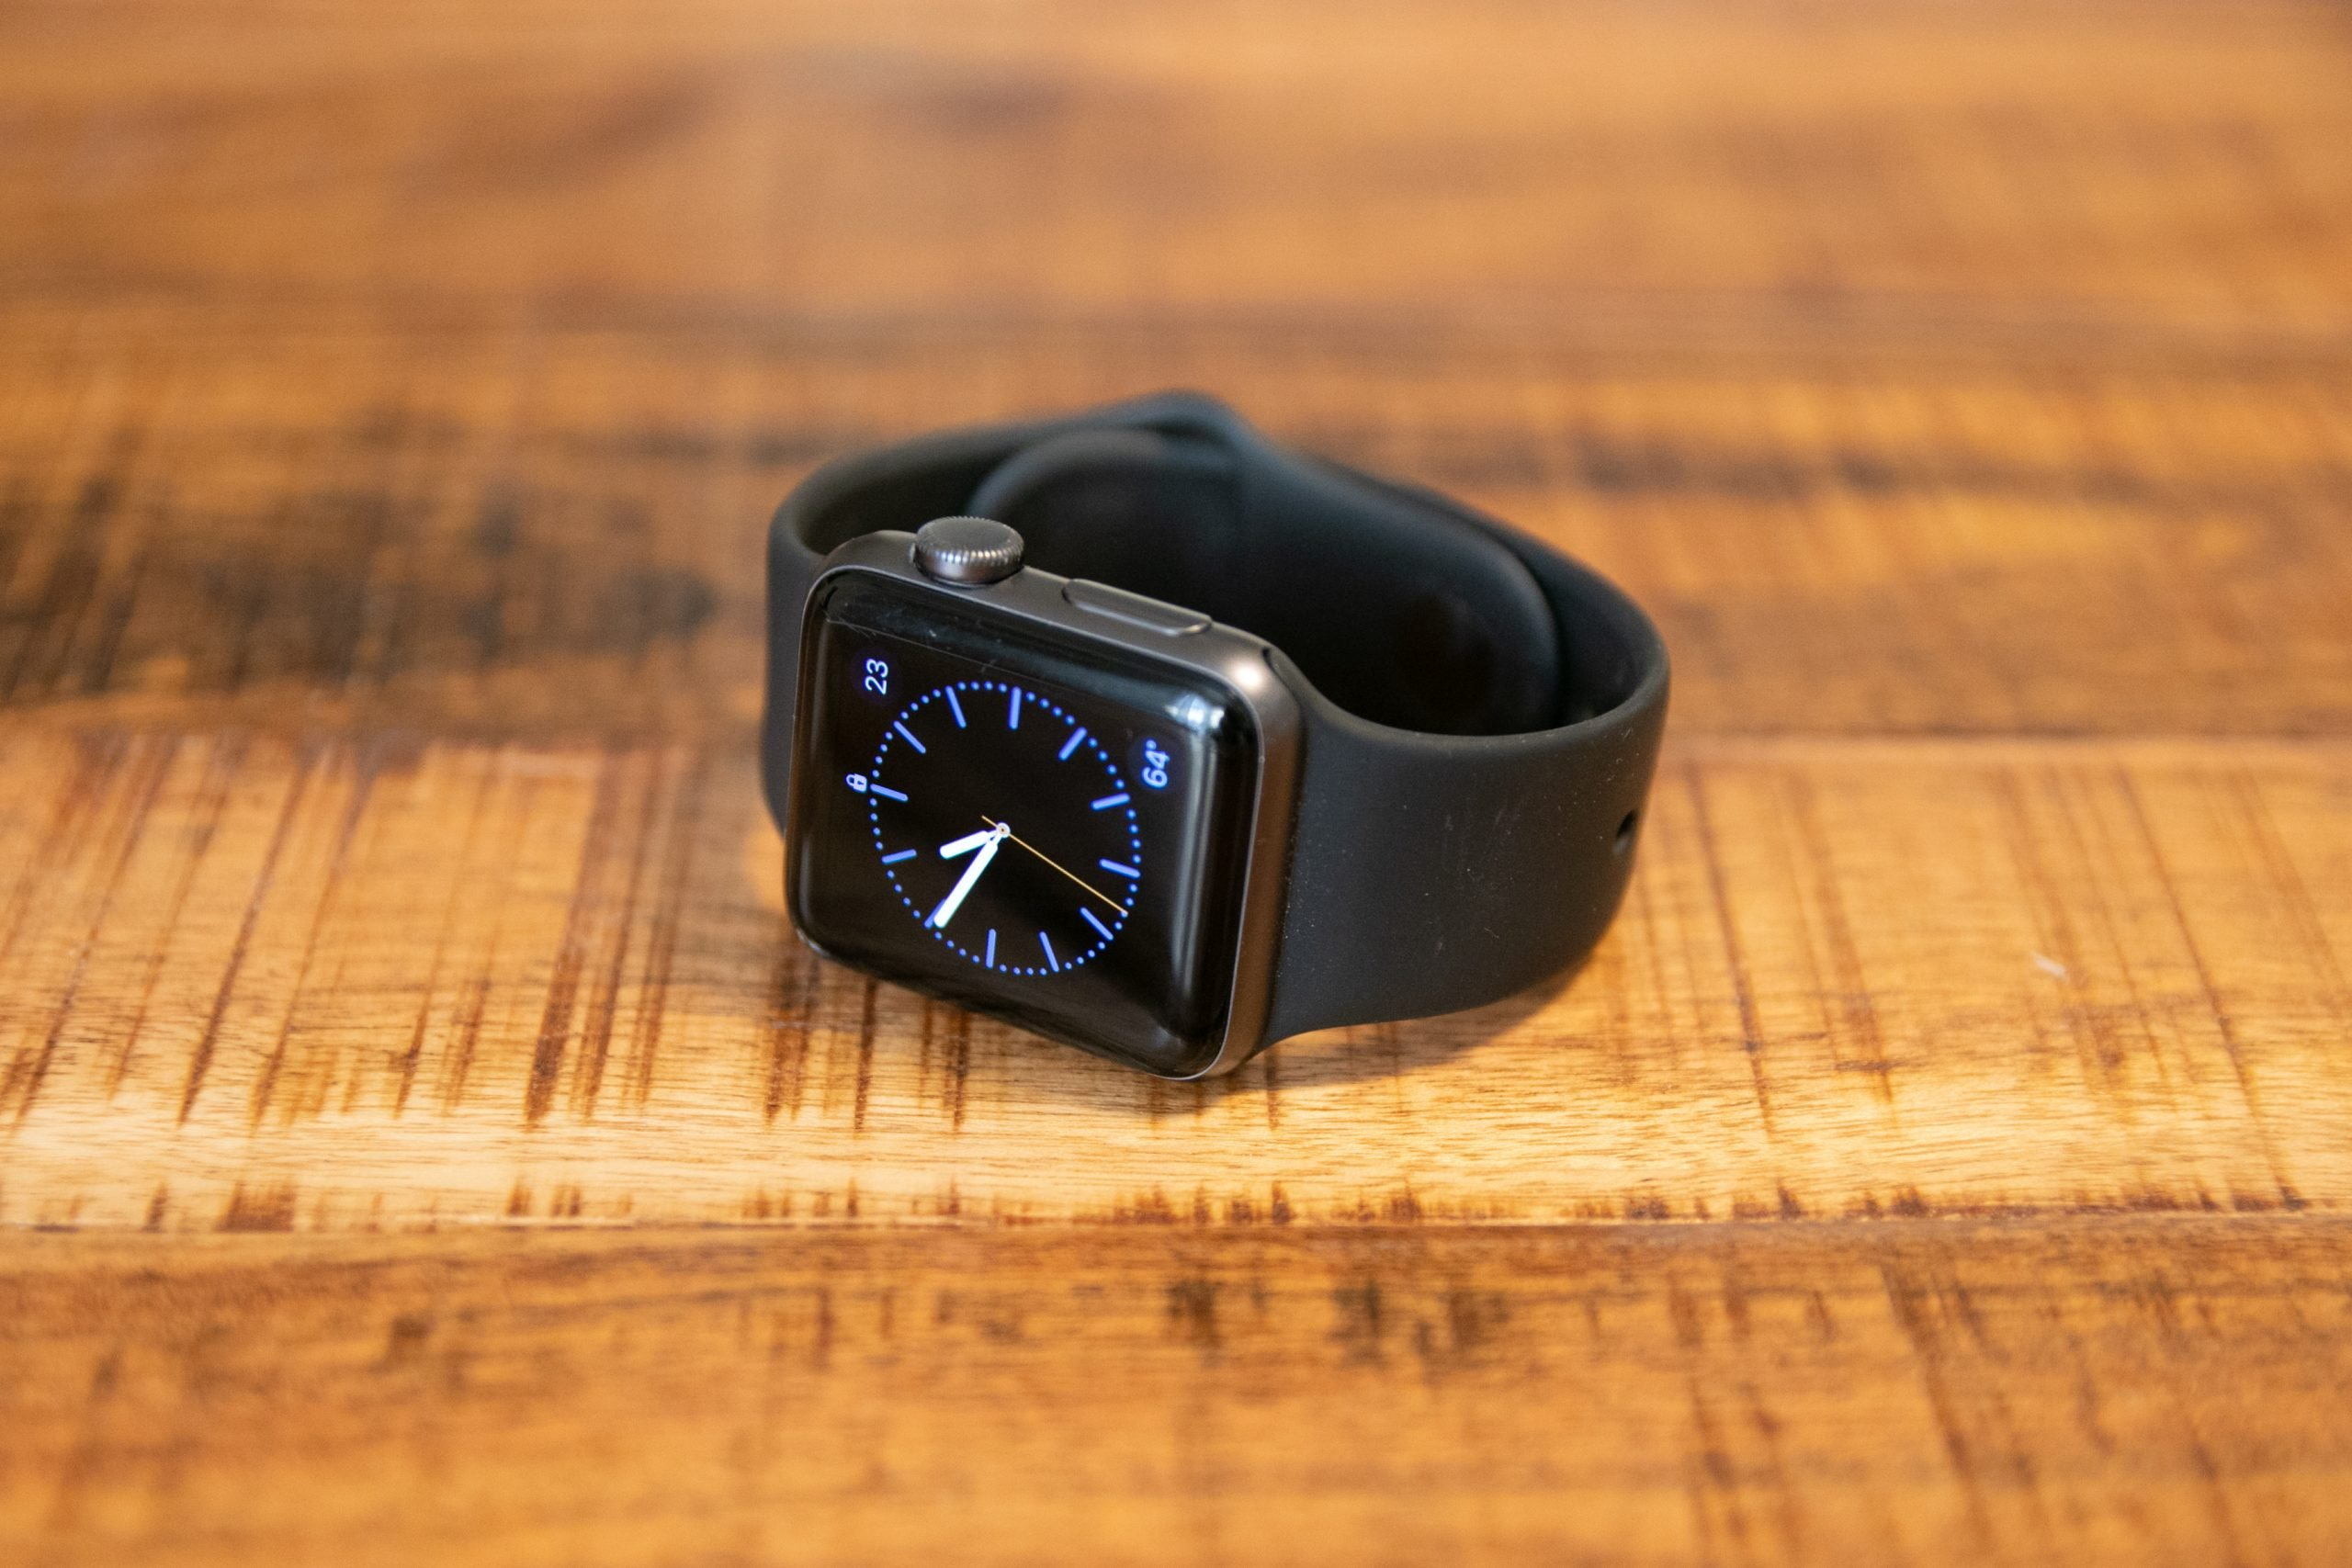 Smart Watch On Wooden Surface